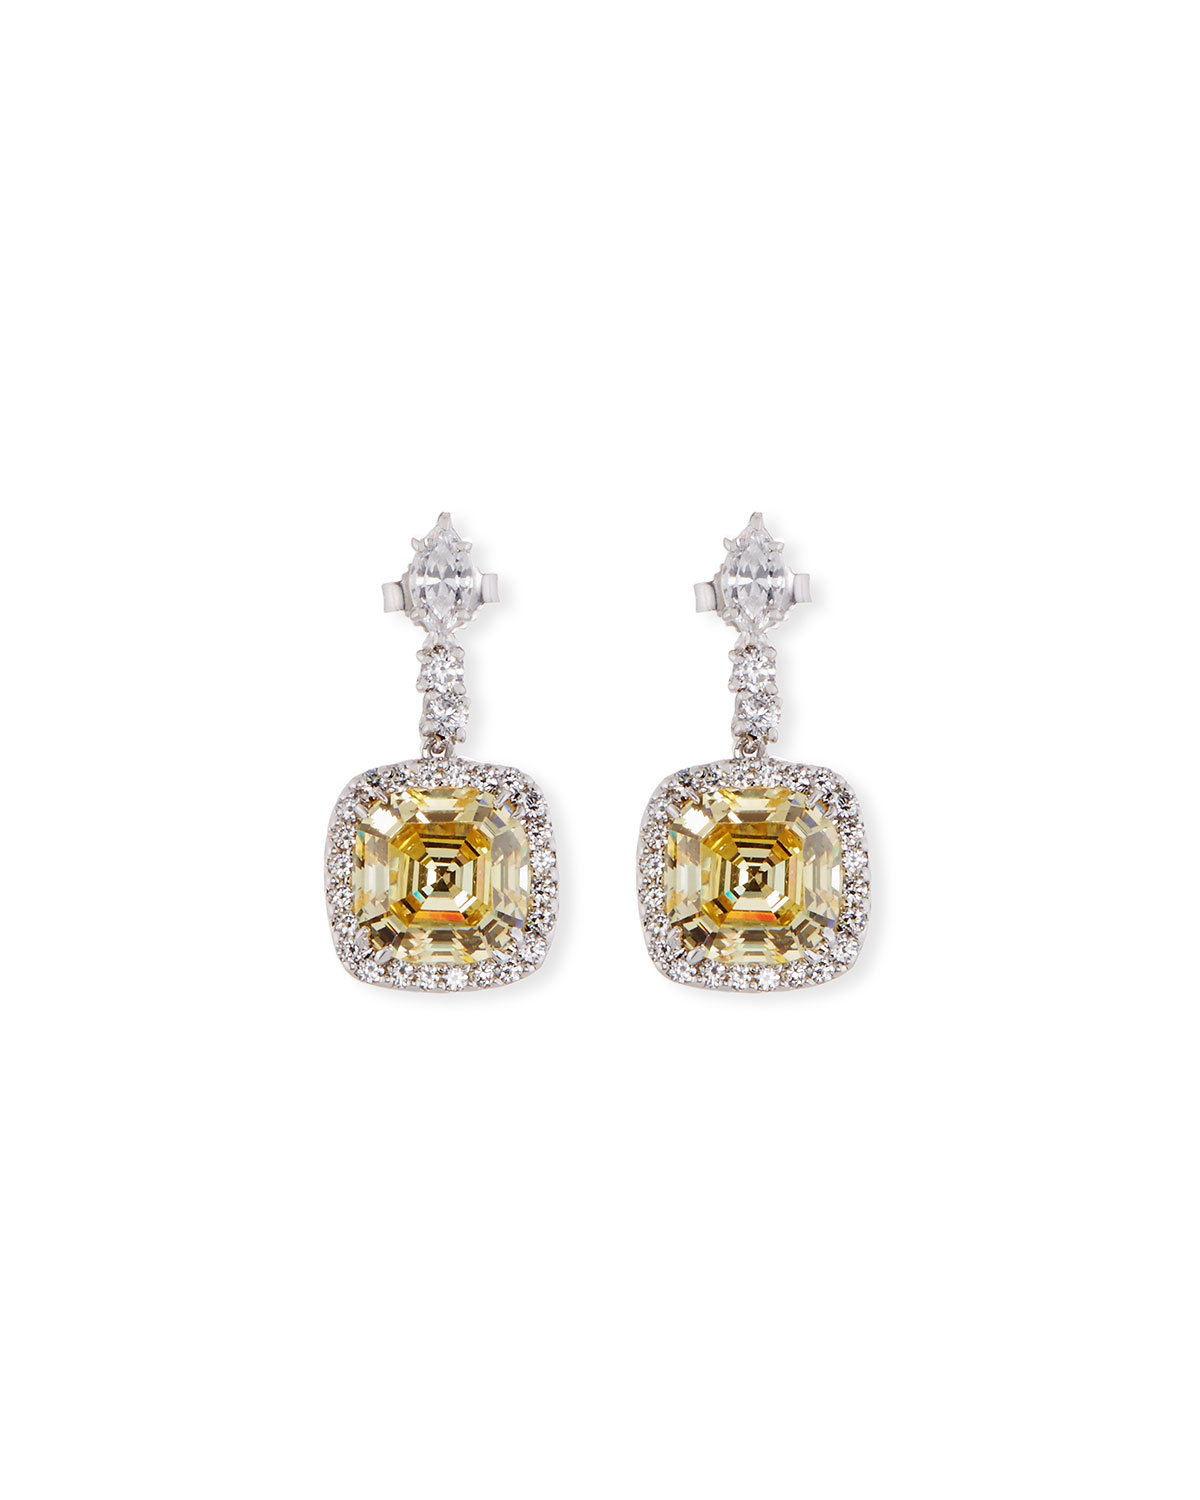 Fantasia Asscher-Cut Canary CZ Drop Earrings eSrY0